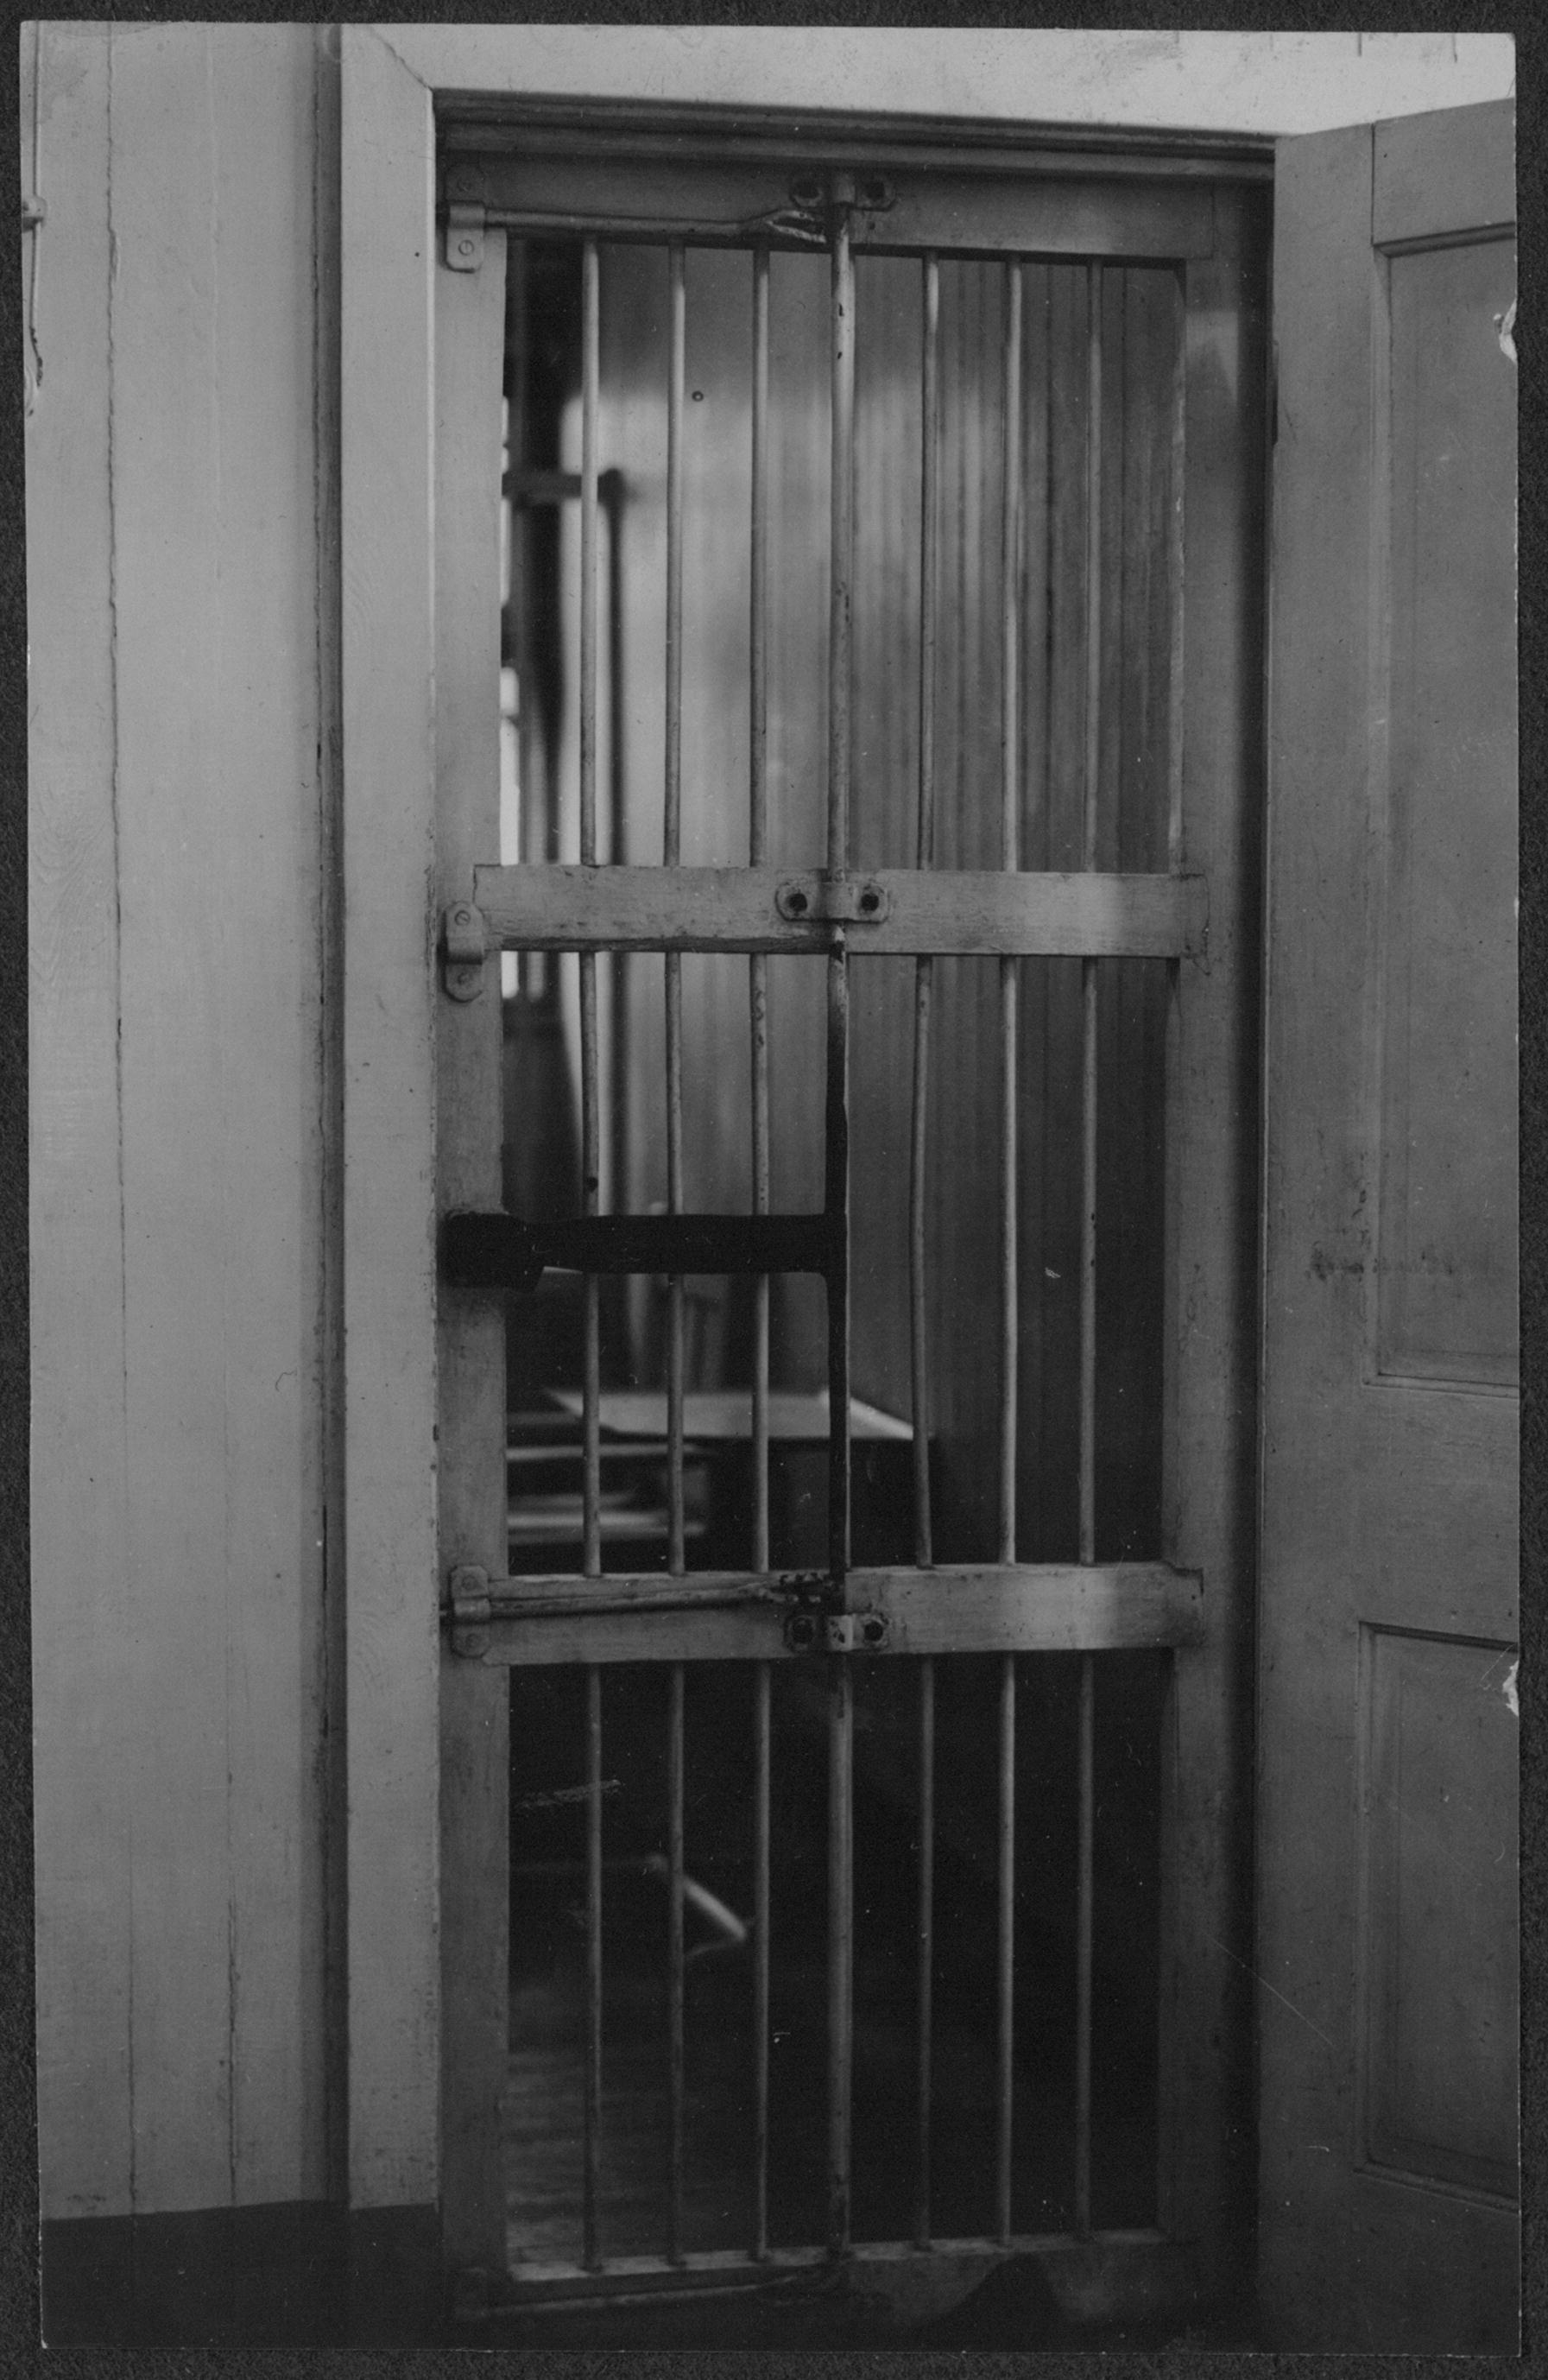 Cell at Occoquan Workhouse by Underwood & Underwood Photographers, ca. 1917 (Library of Congress, public domain)